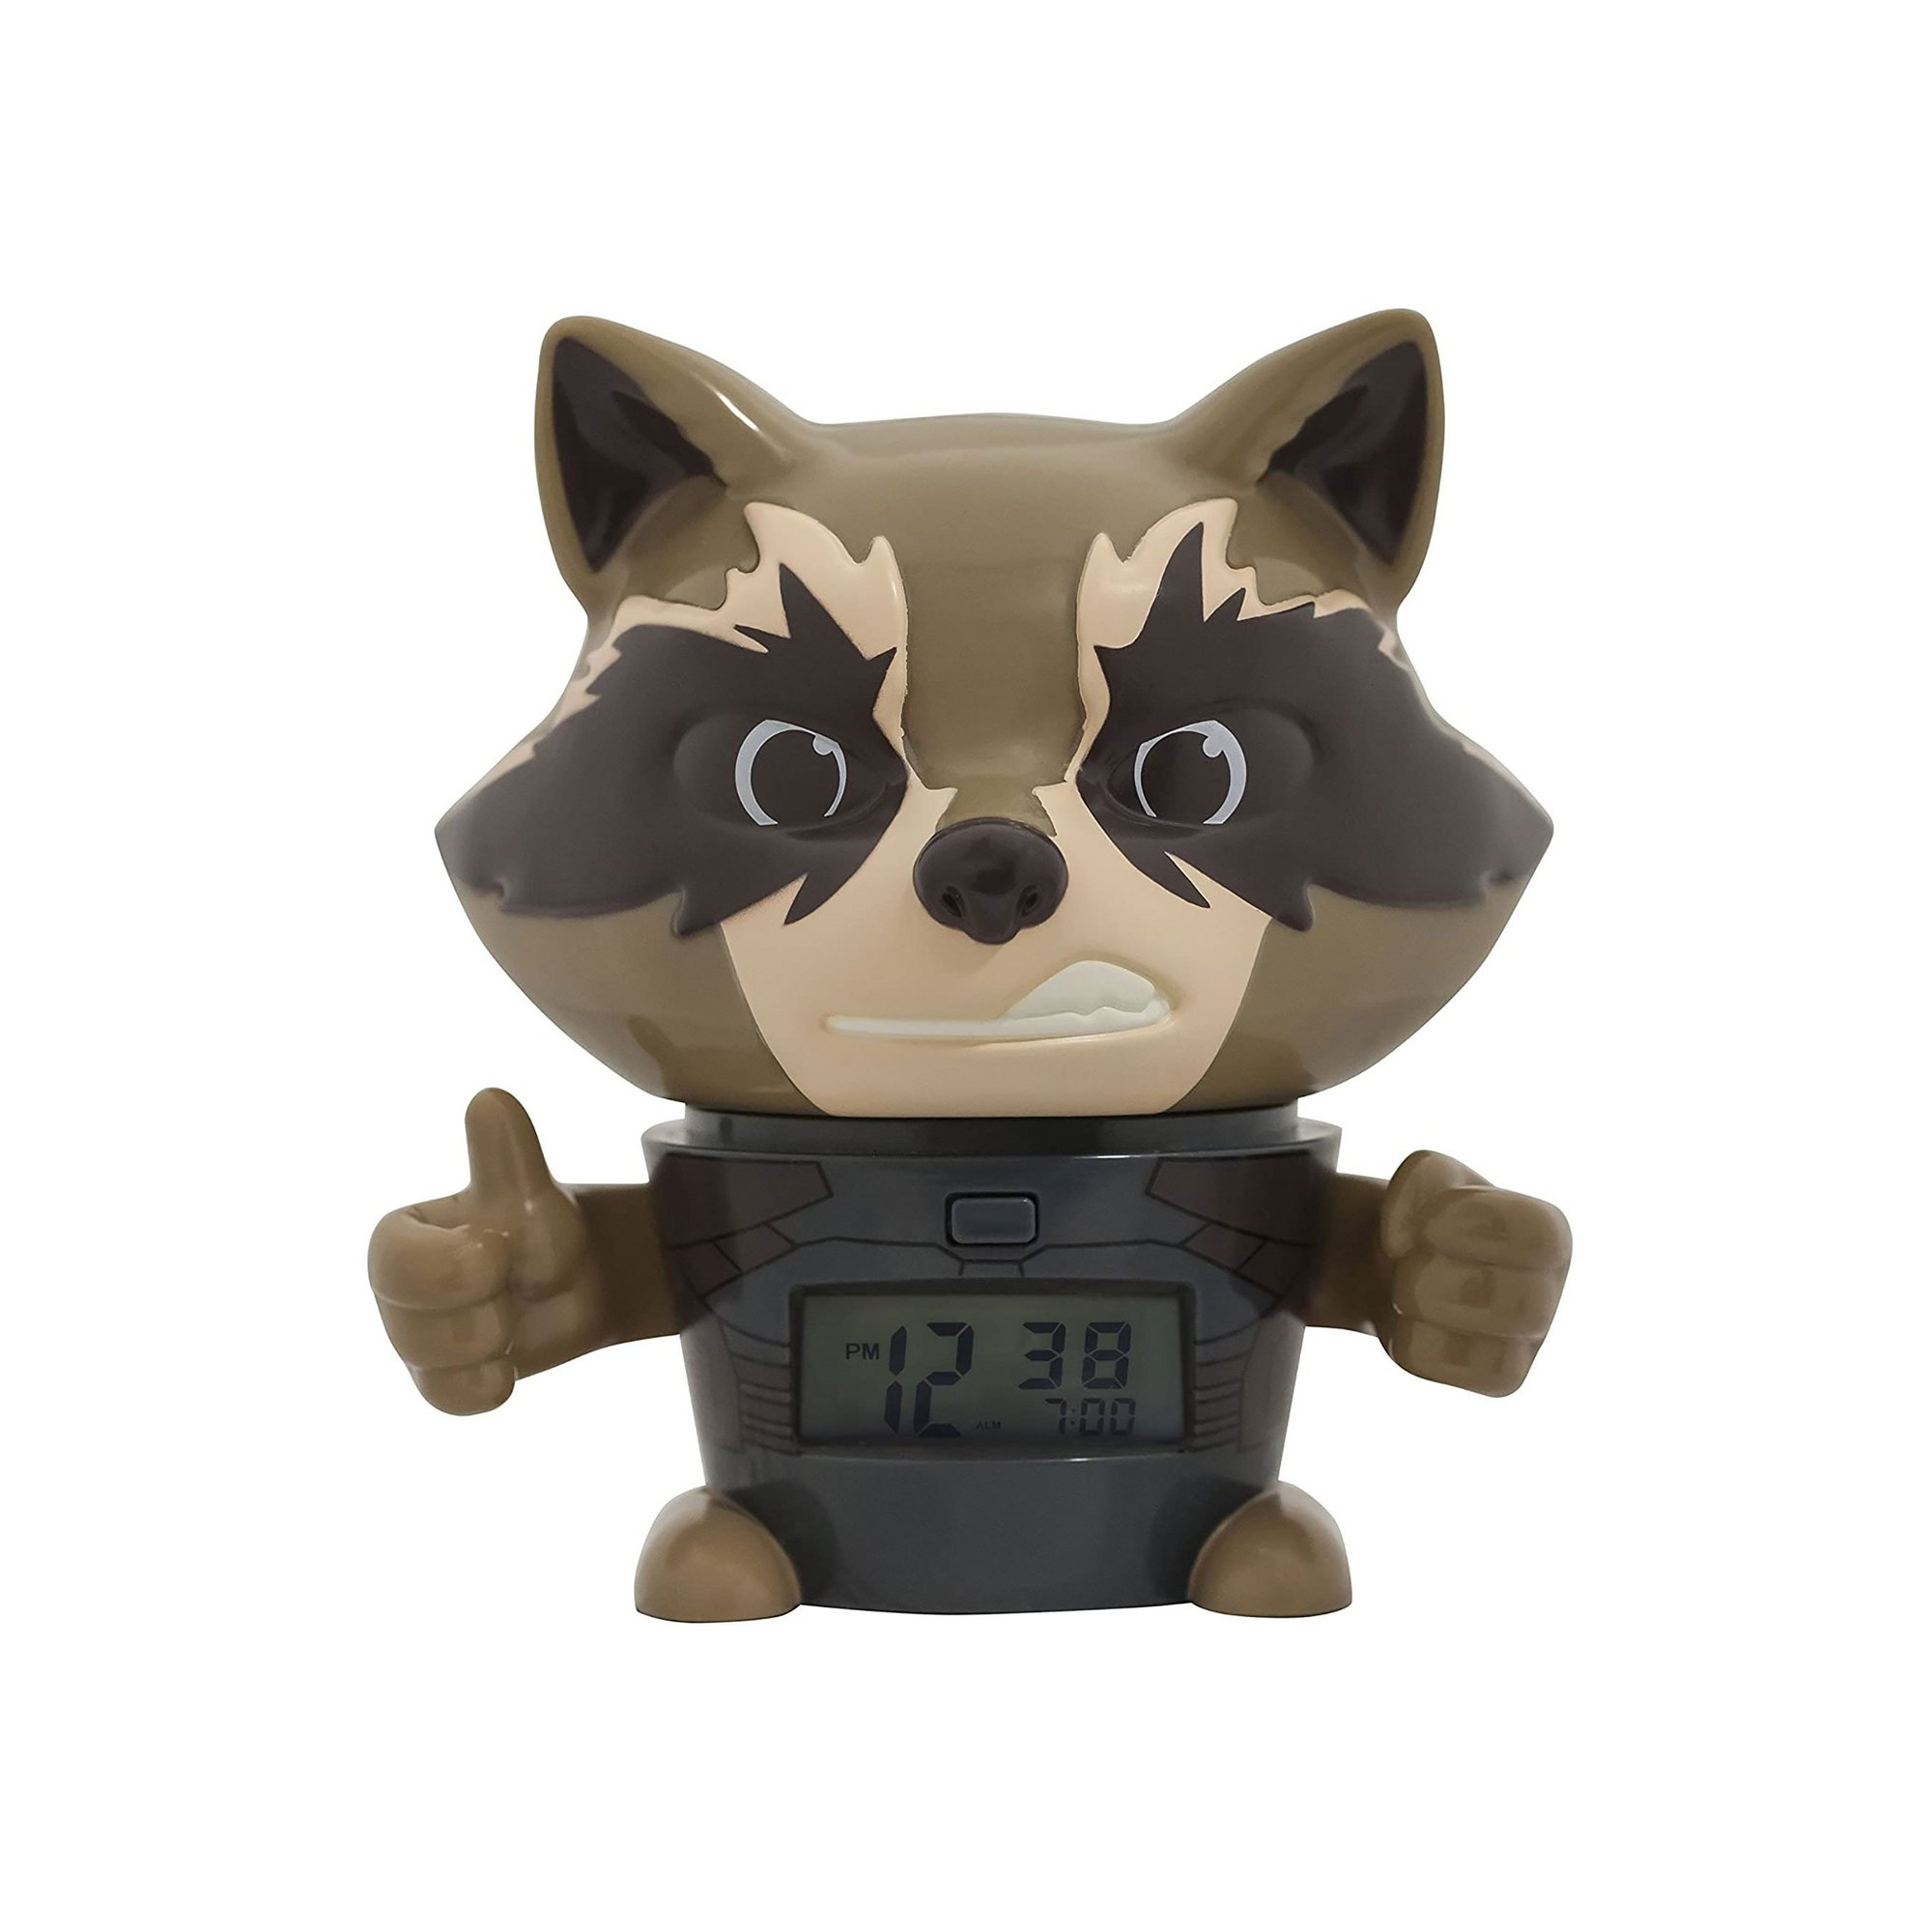 Image of Avengers Infinity War Rocket Raccoon Night Light Alarm Clock